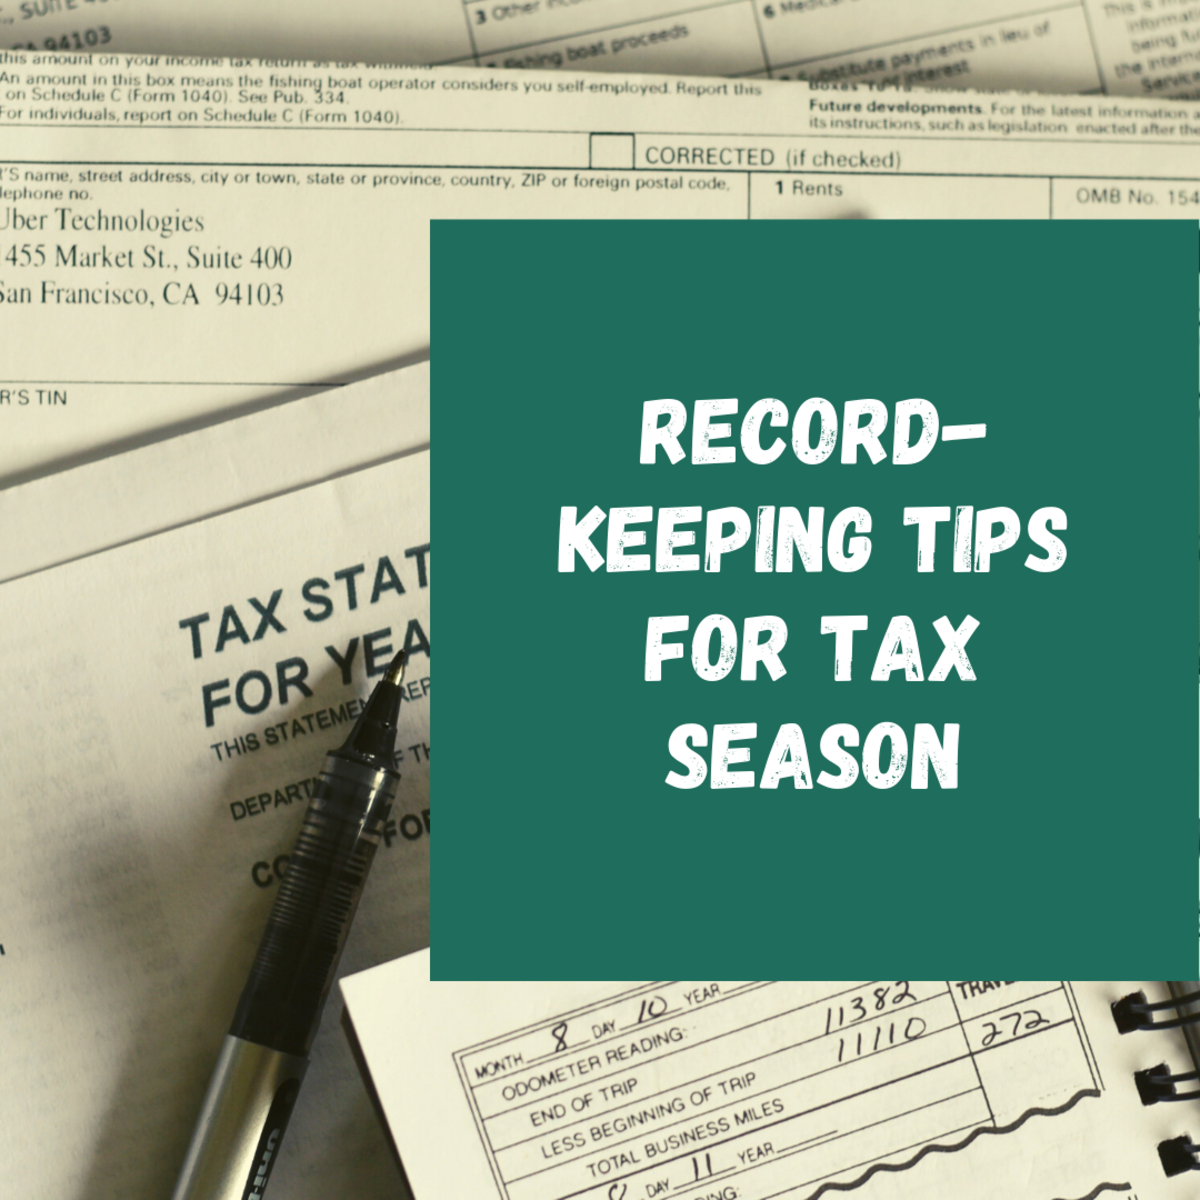 Record-Keeping Tips for Tax Season